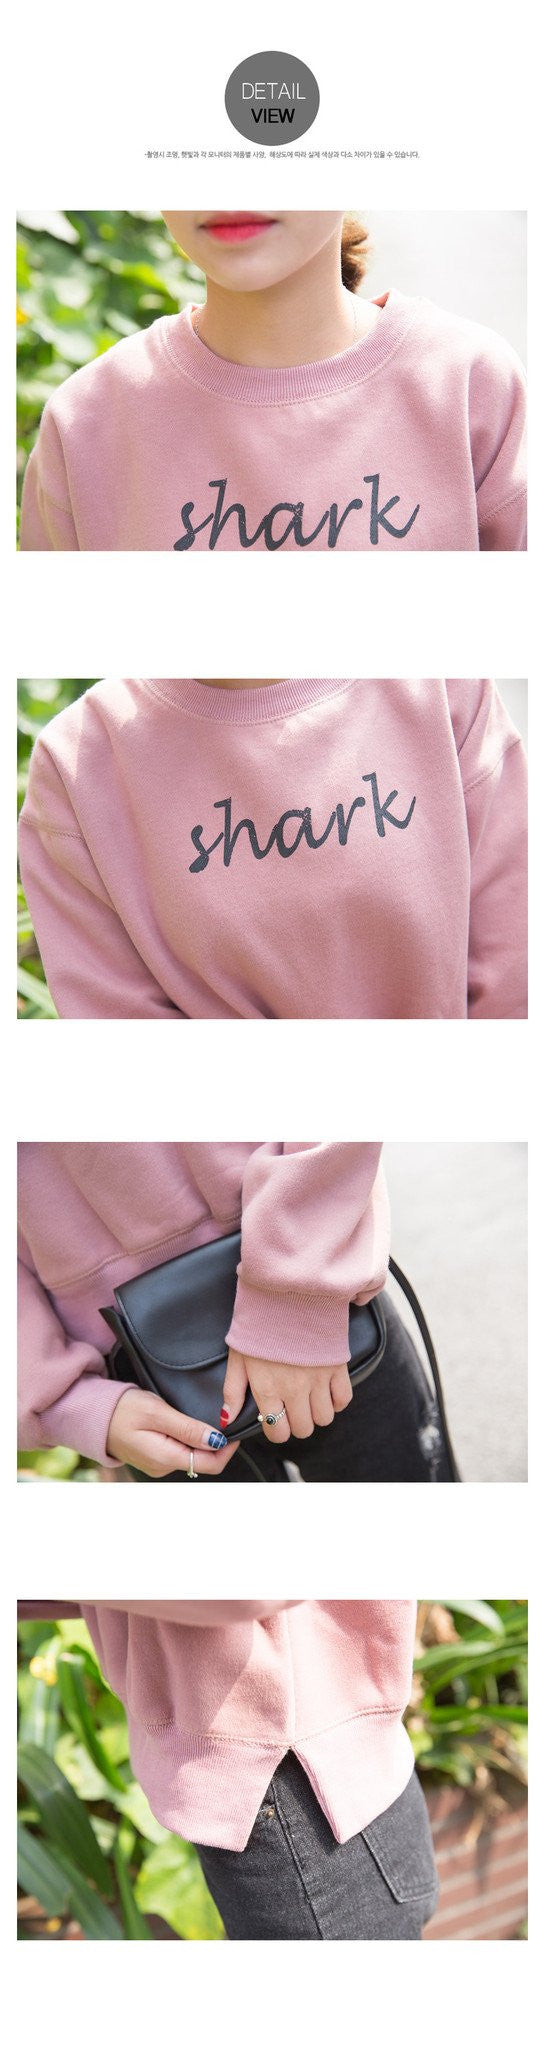 Shark Printed Casual Sweatshirts -  - Online Aesthetic Shop - 2